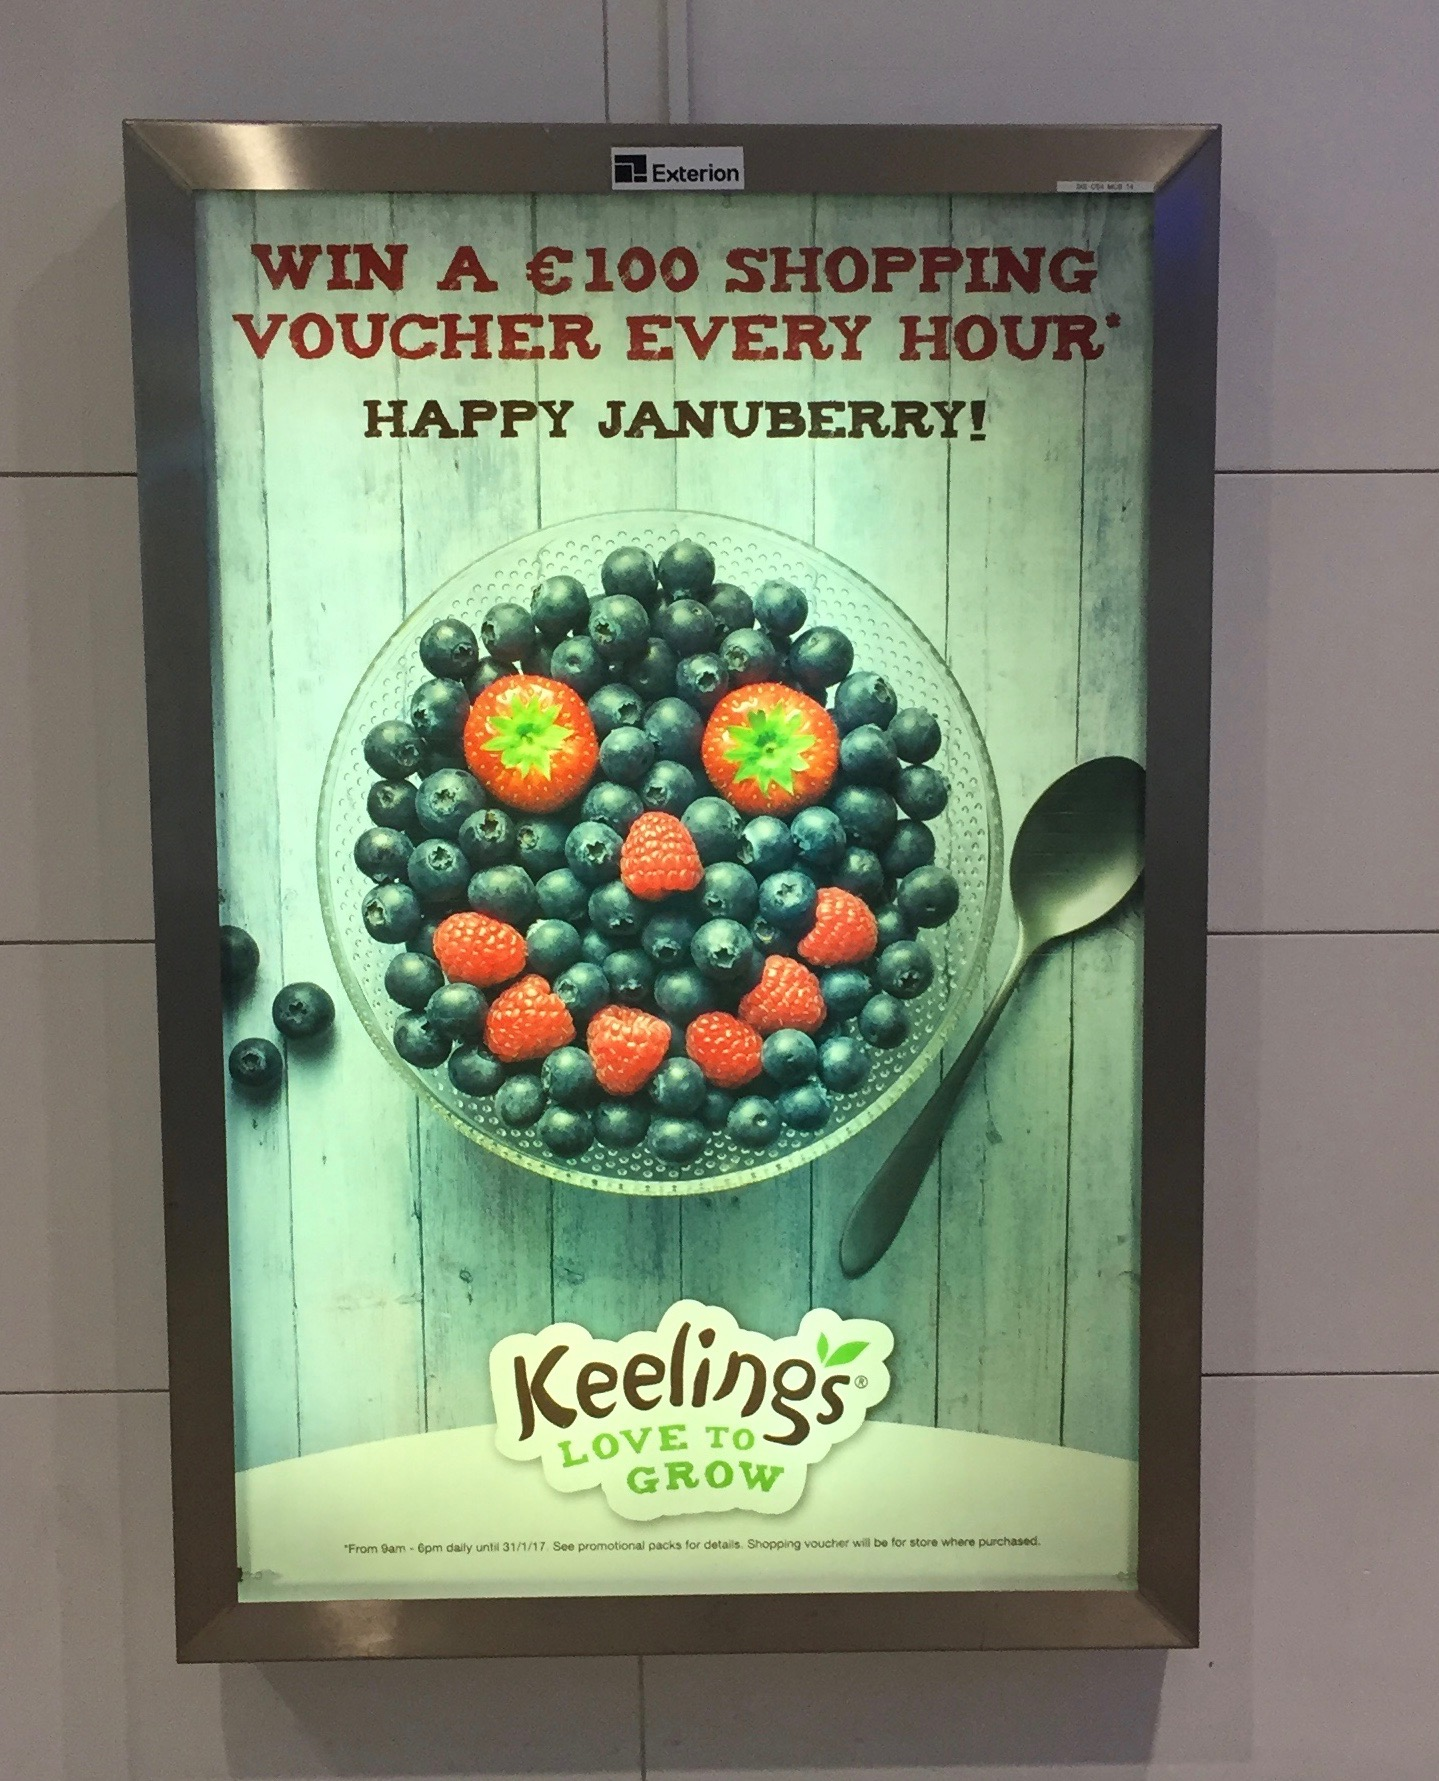 Keelings- win a €100 shopping voucher every hour – Happy Januberry